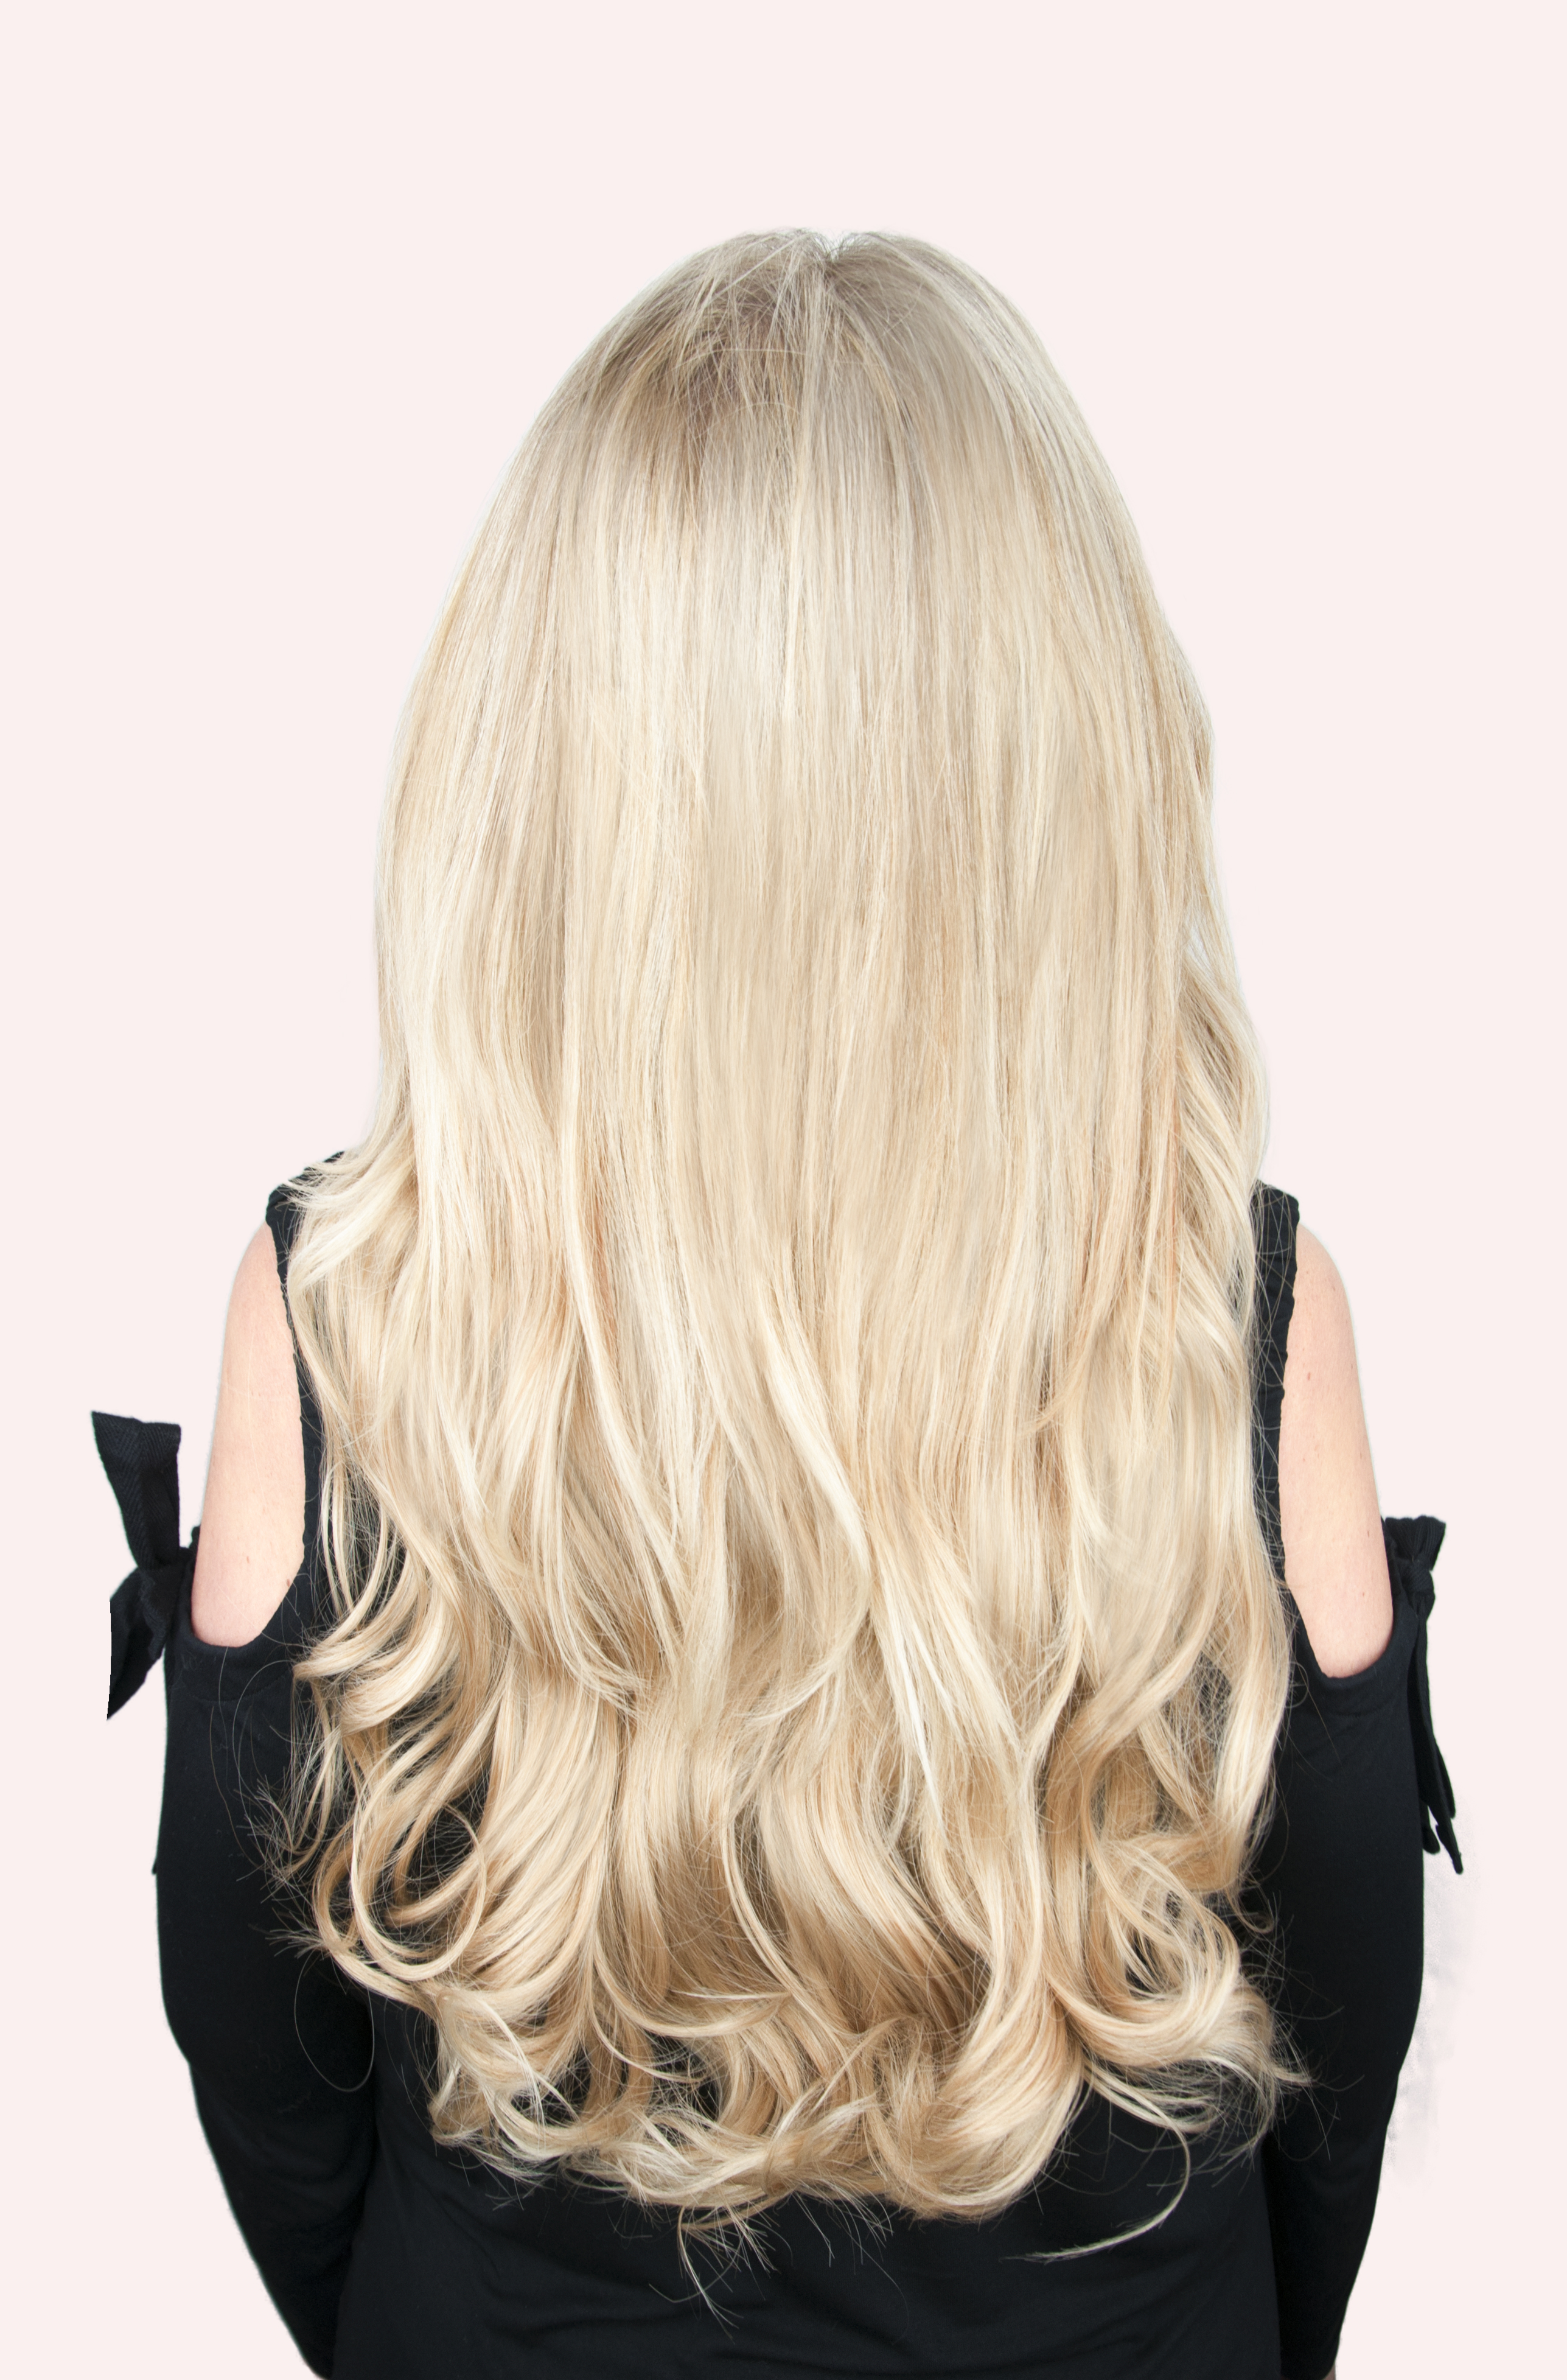 24 Bombshell Super Thick 5 Piece Wavy Clip In Hair Extensions